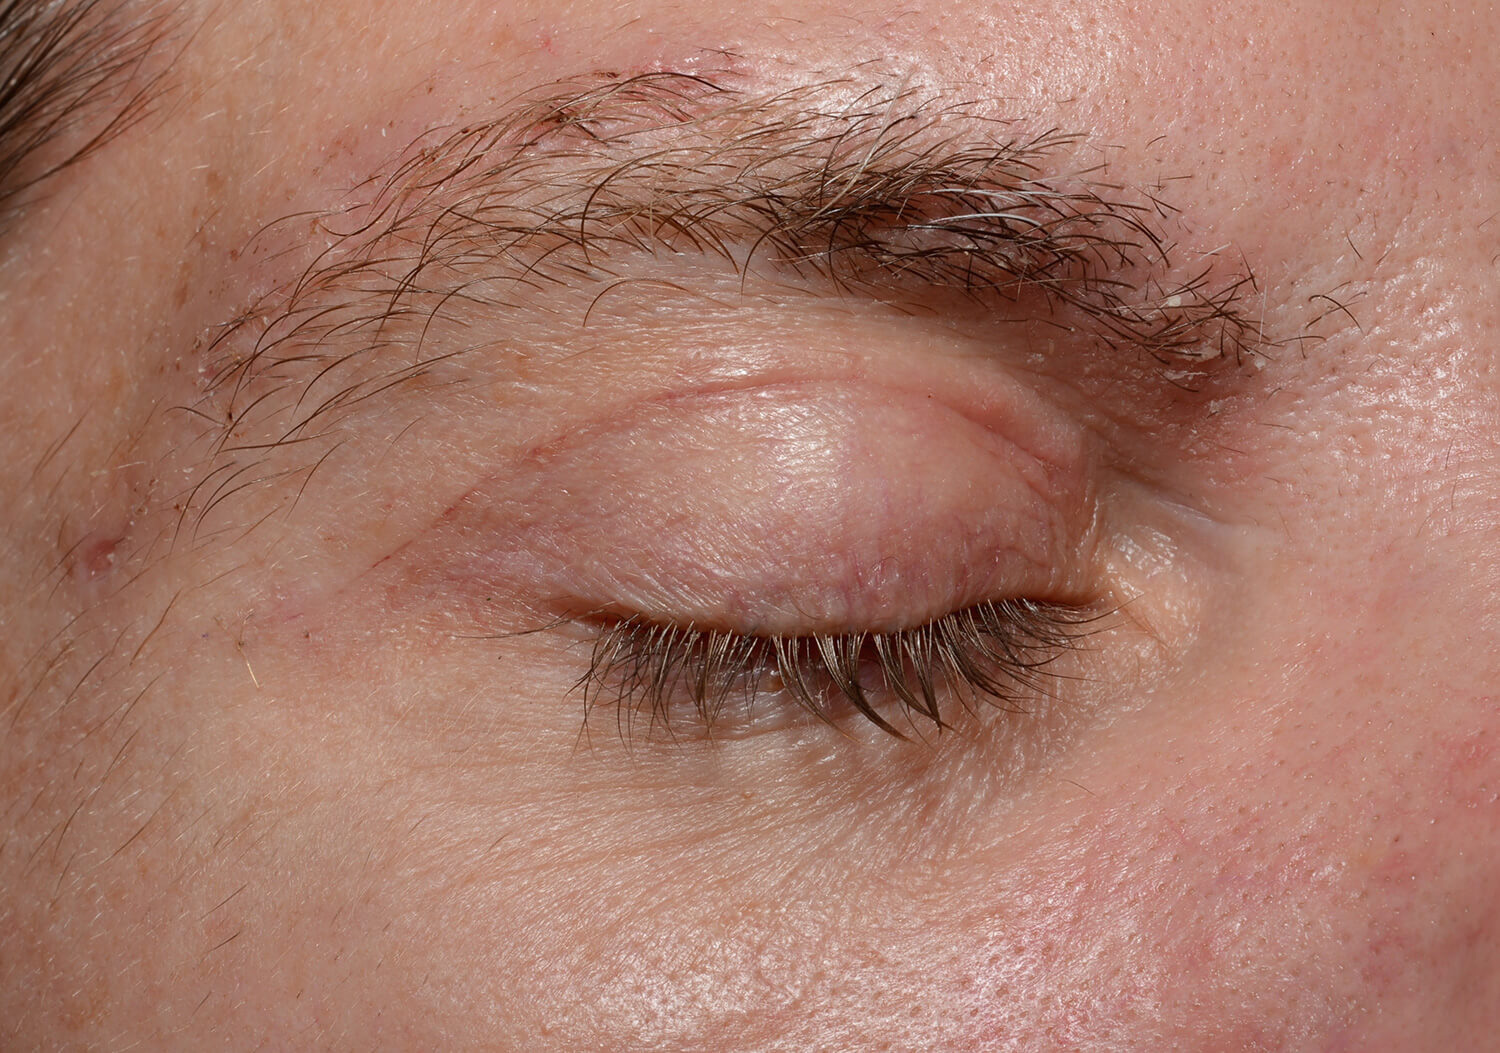 Healing upper eyelid incision at only 8 days after surgery